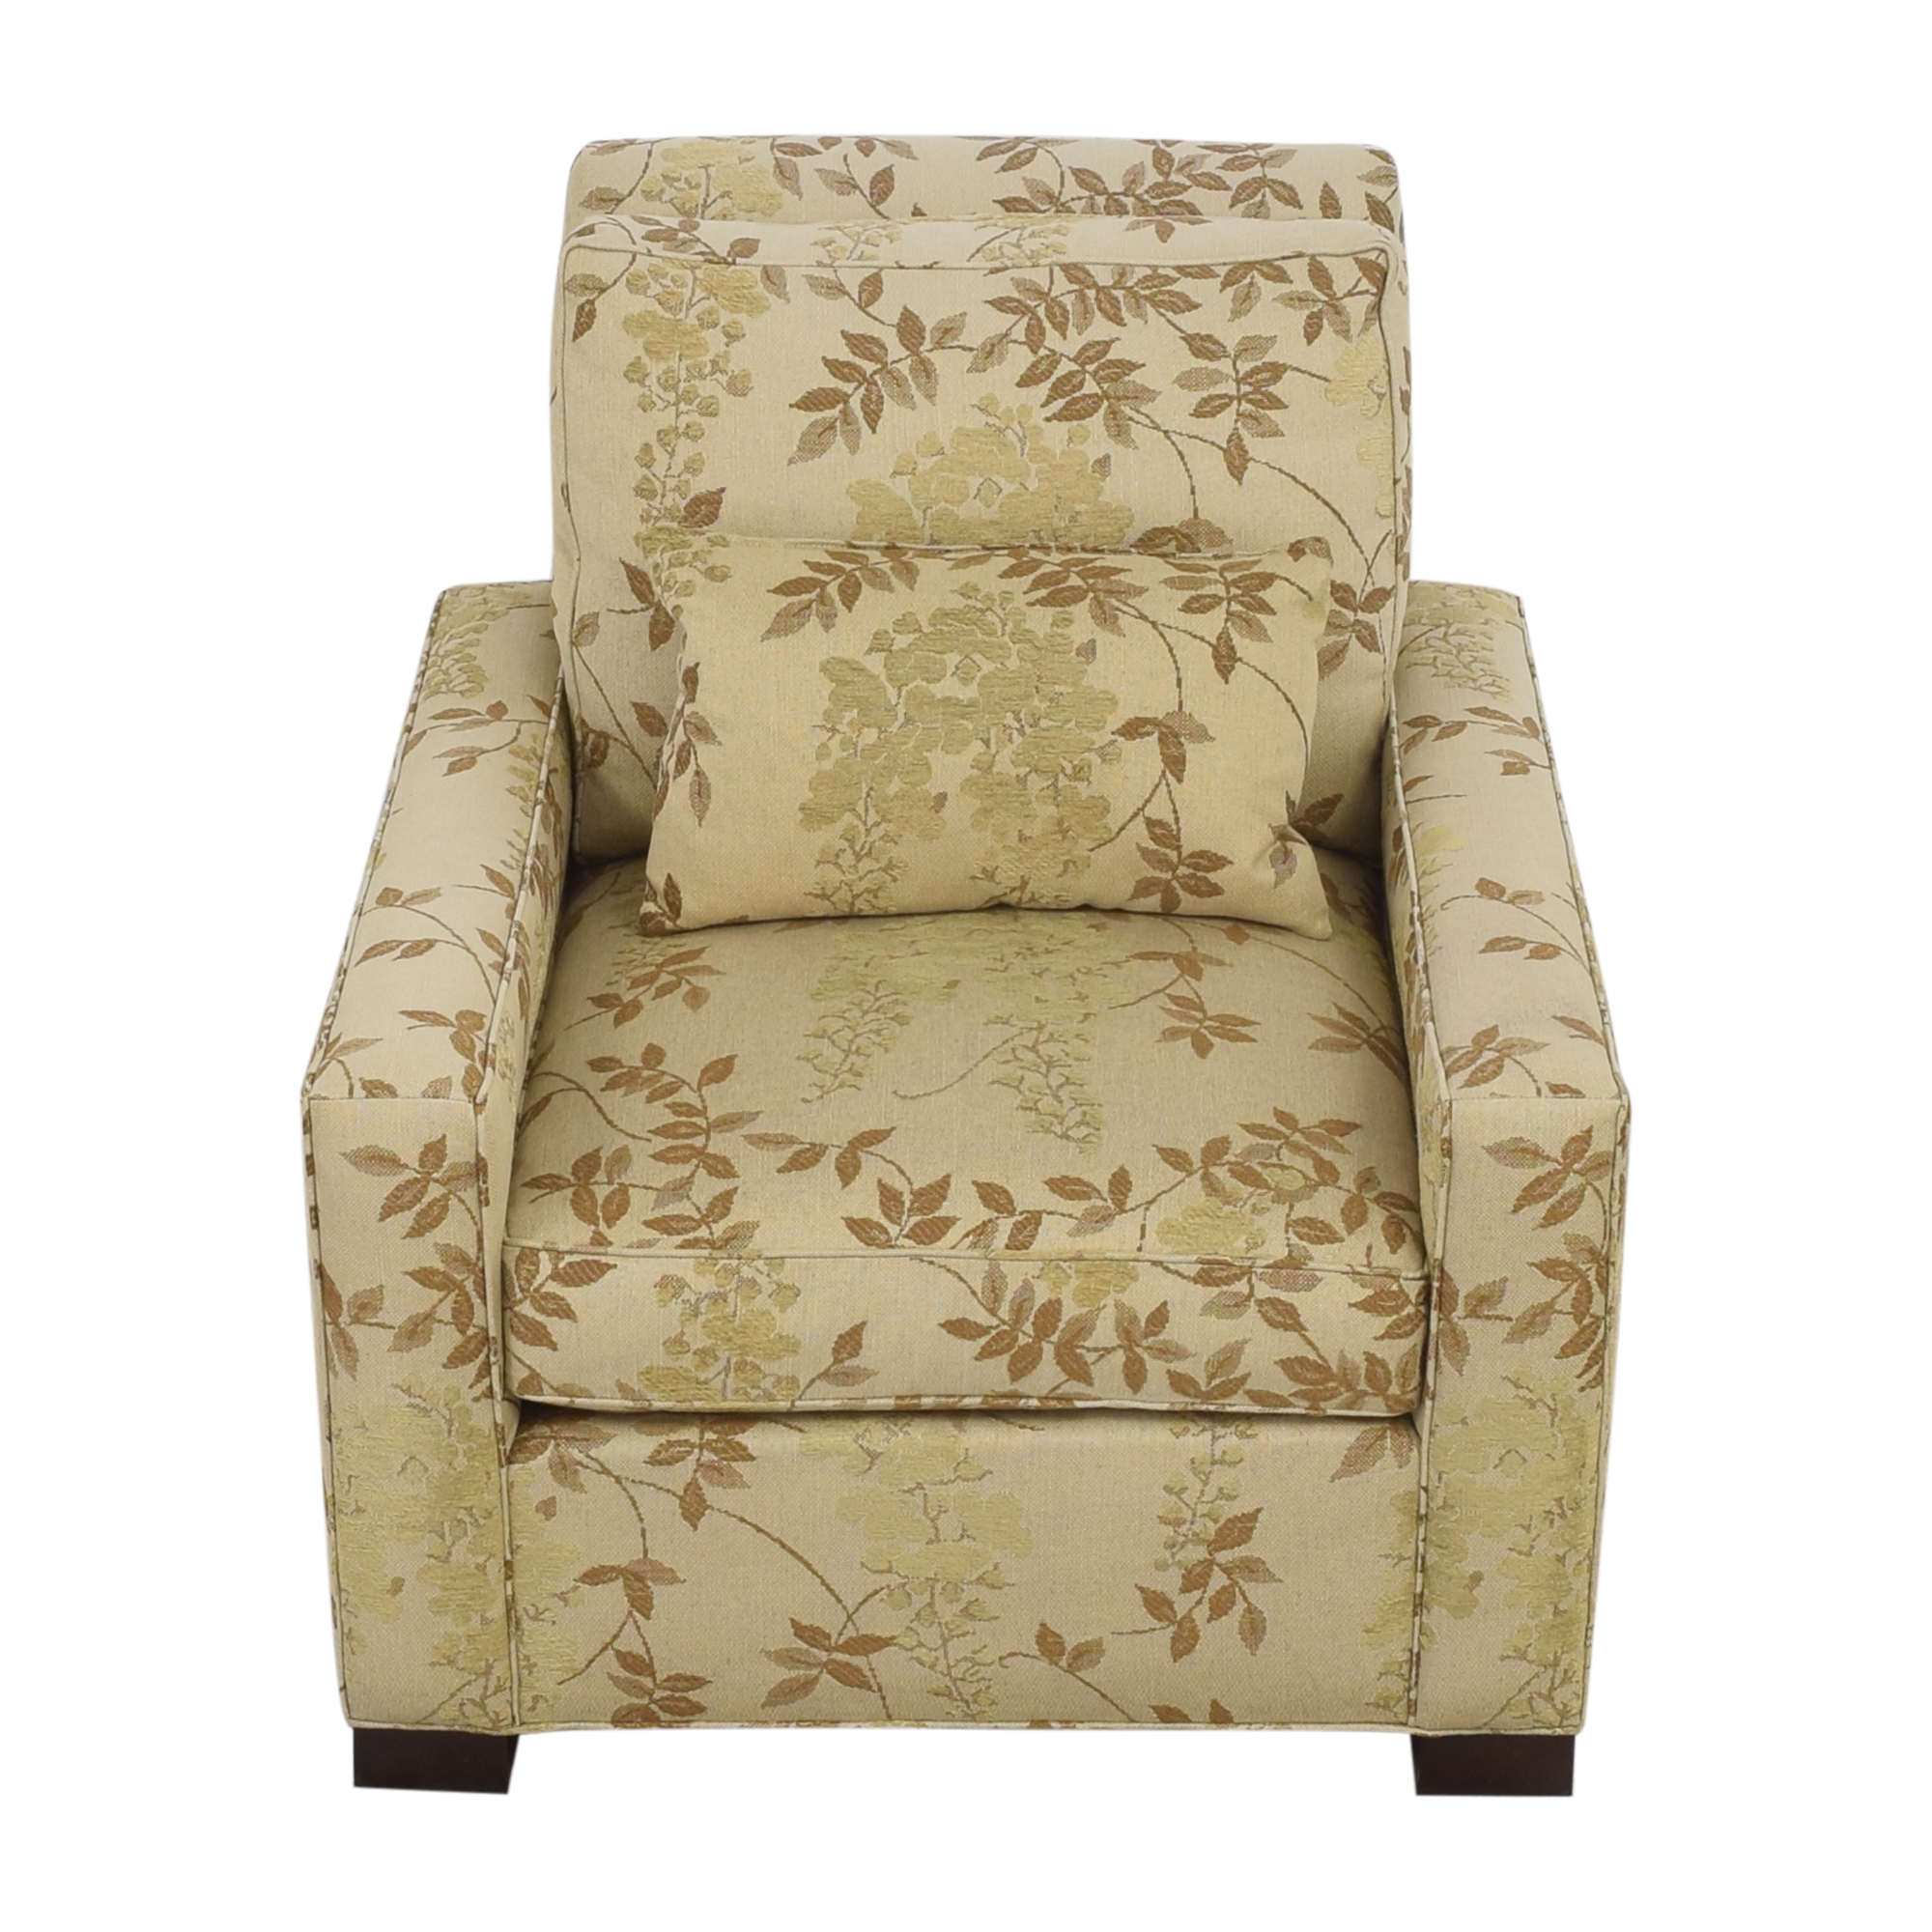 buy Hickory Chair Upholstered Club Chair Hickory Chair Accent Chairs